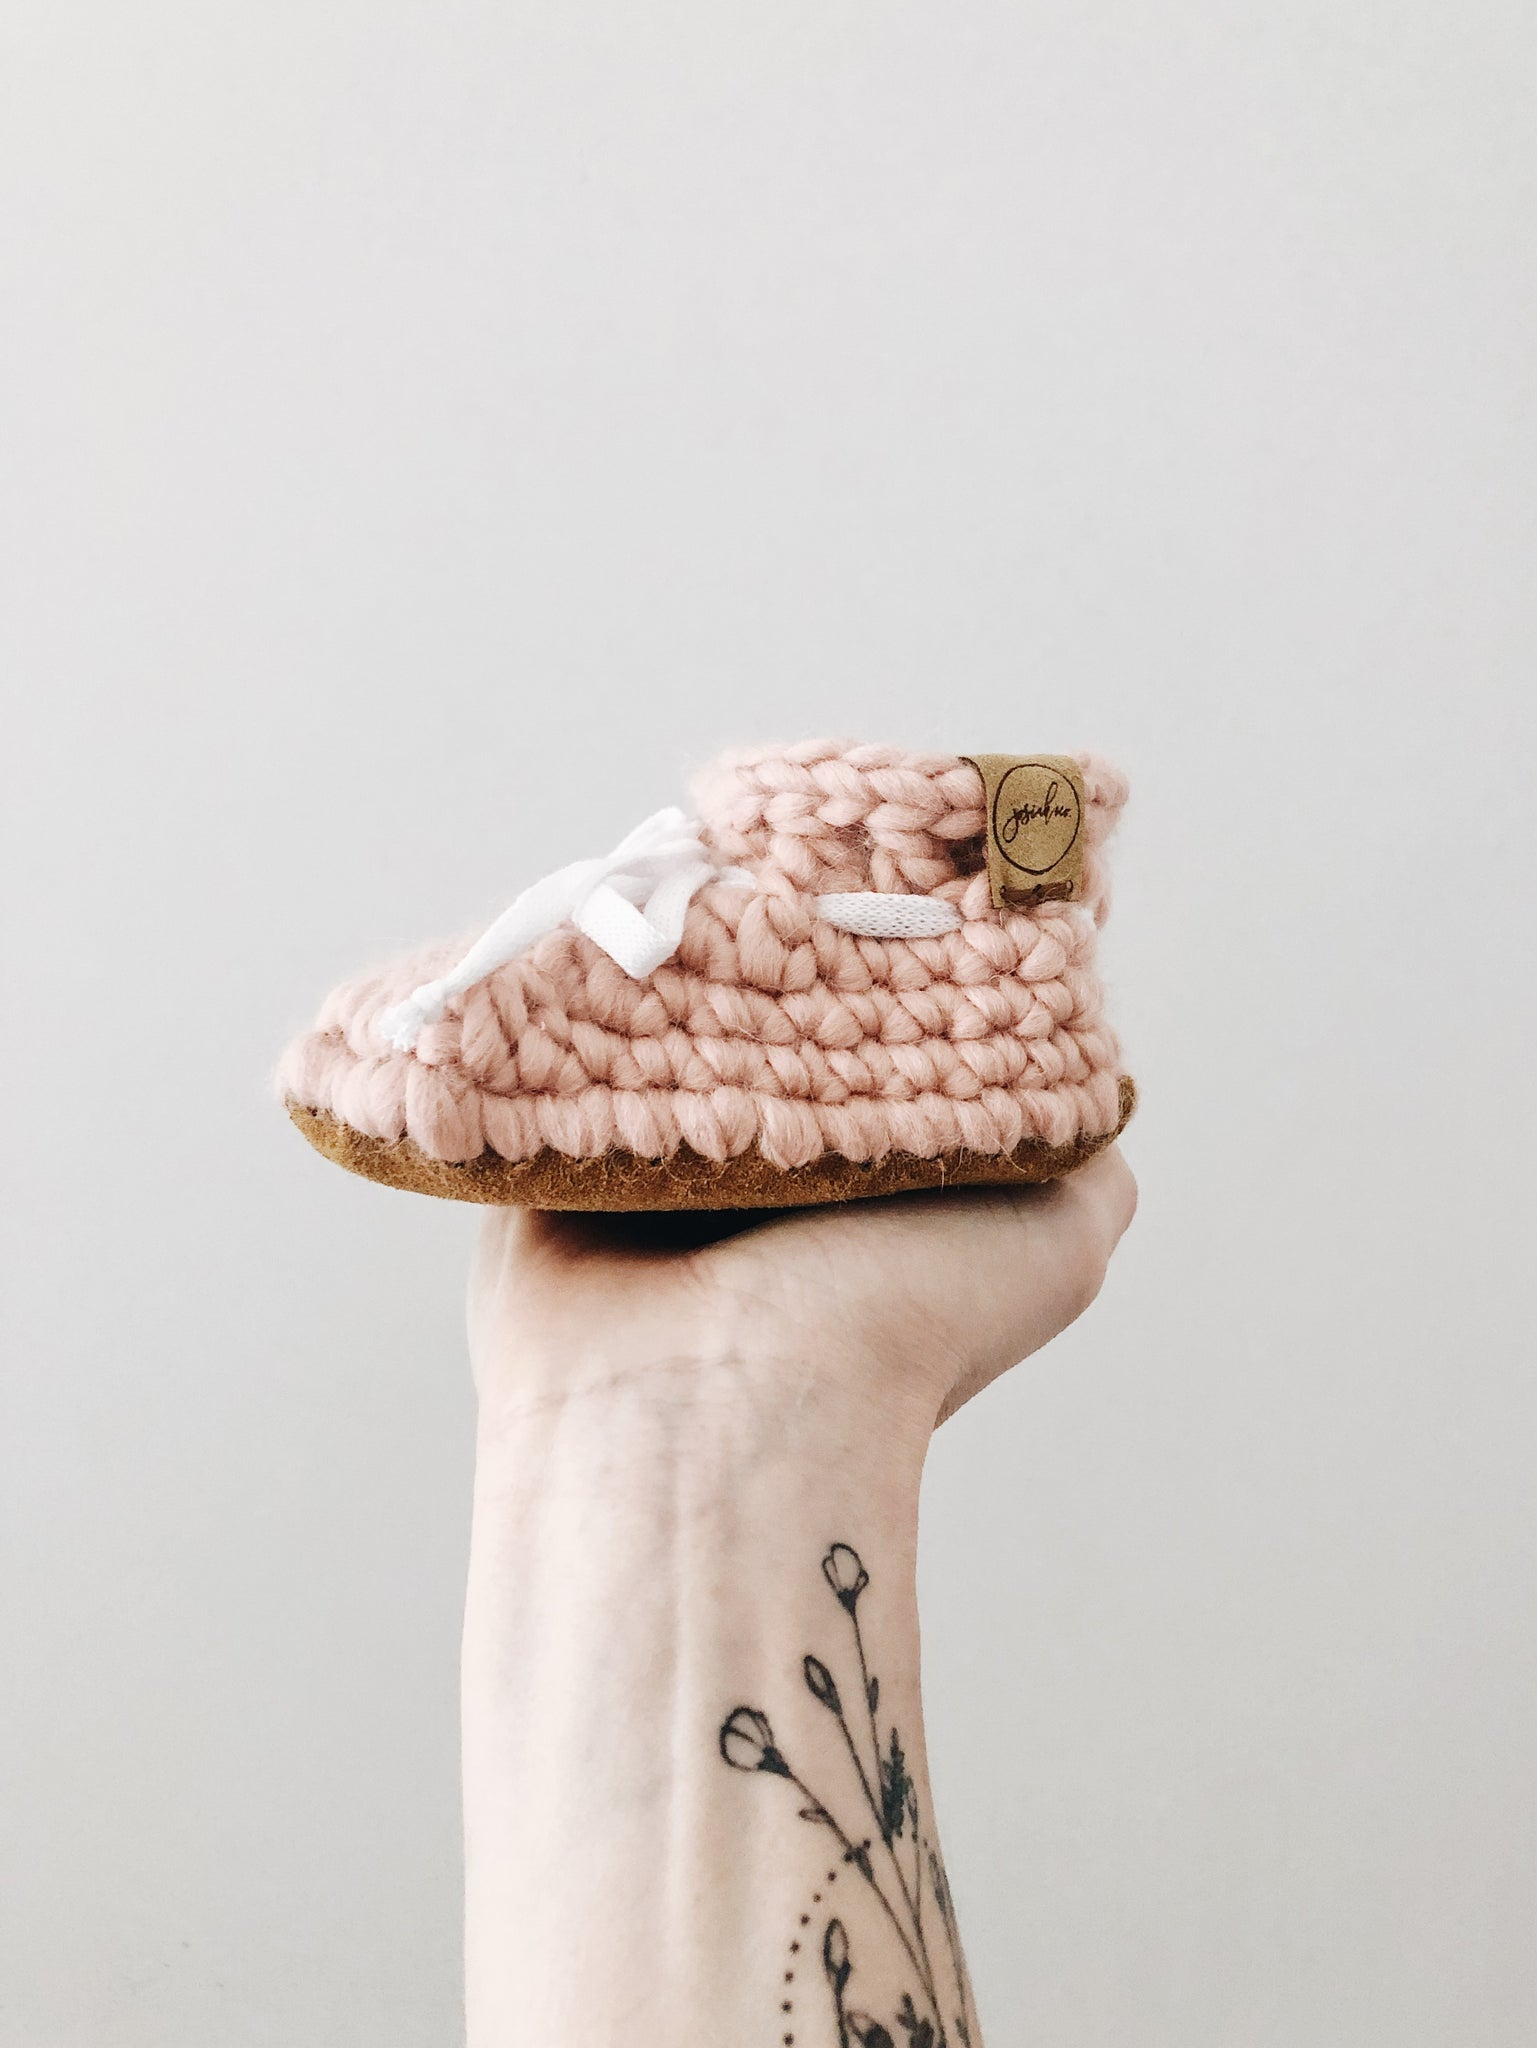 SS20 'Dusty Rose' Leather Slippers // Baby